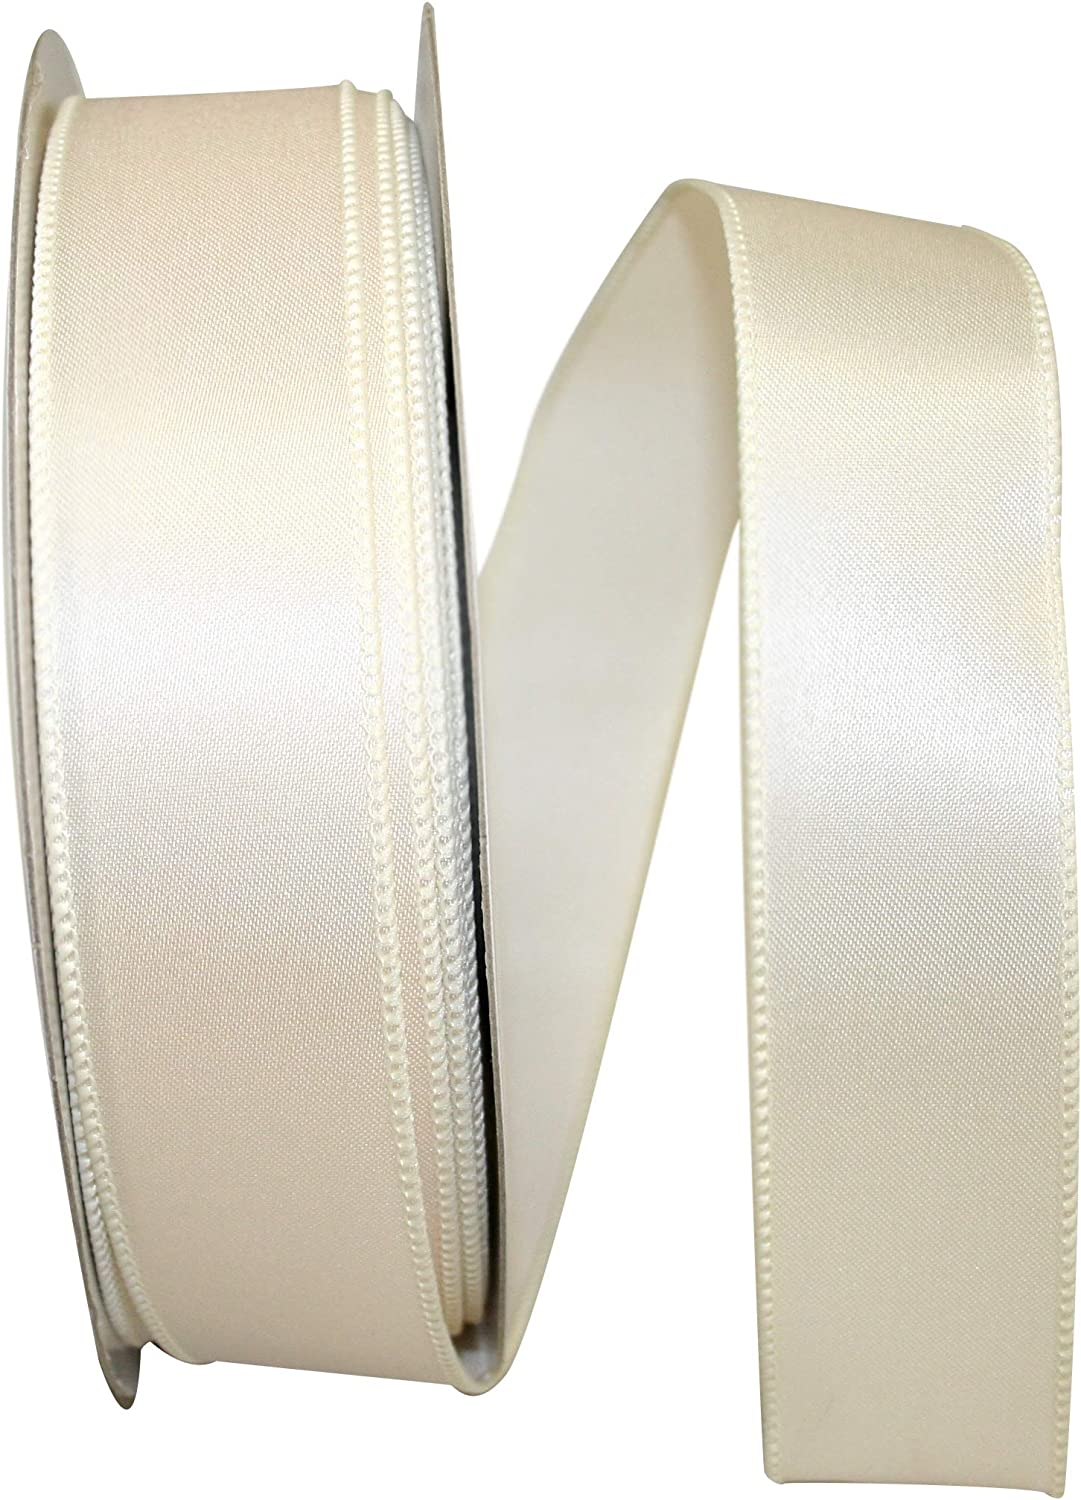 Emerald Green Reliant Ribbon 92575W-510-09K Satin Value Wired Edge Ribbon 1-1//2 Inch X 50 Yards